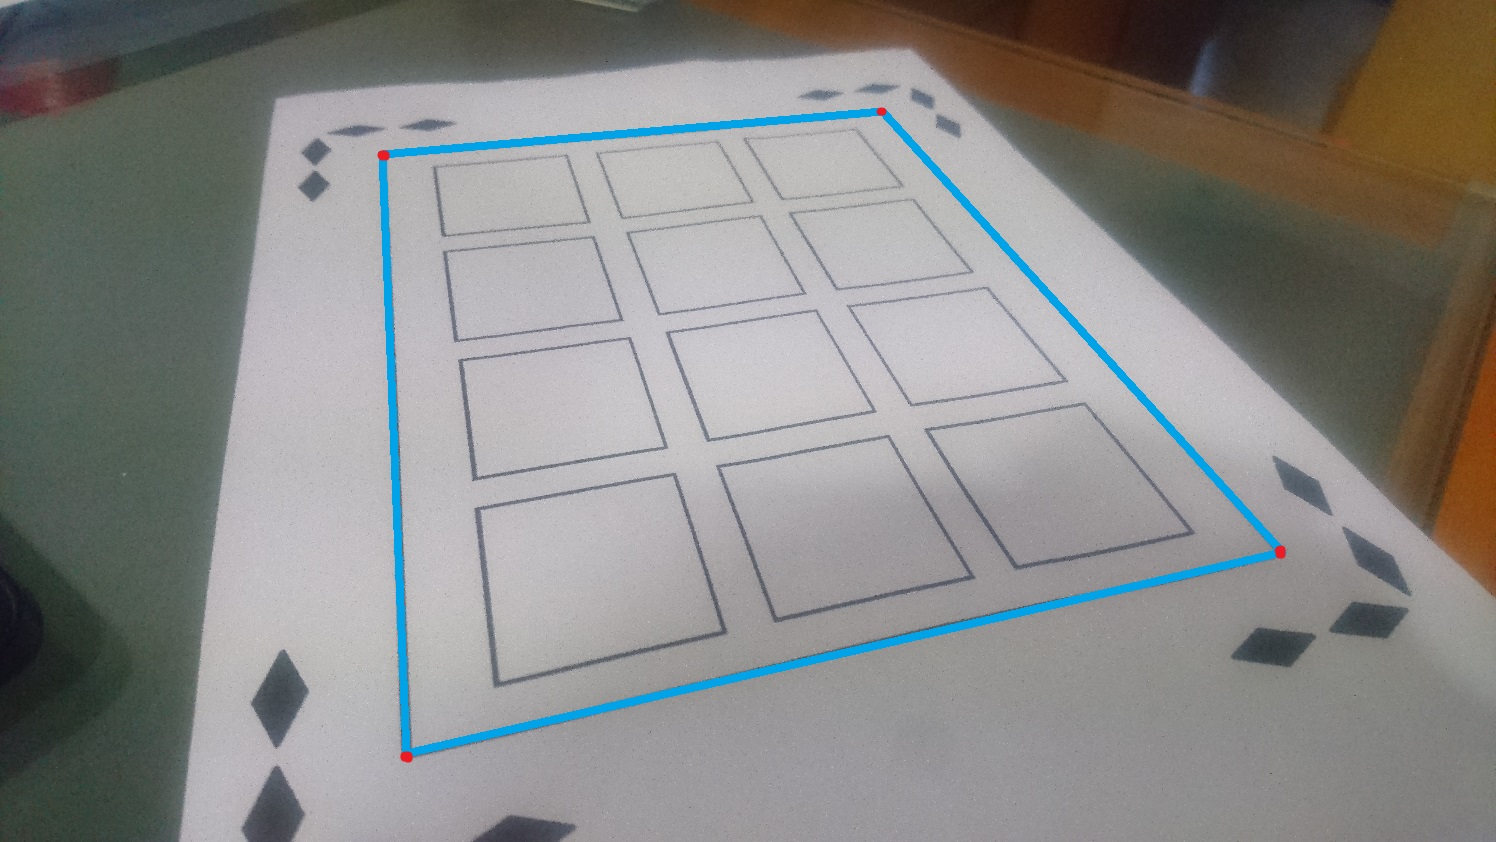 Determine the different corners of a rectangle detected on